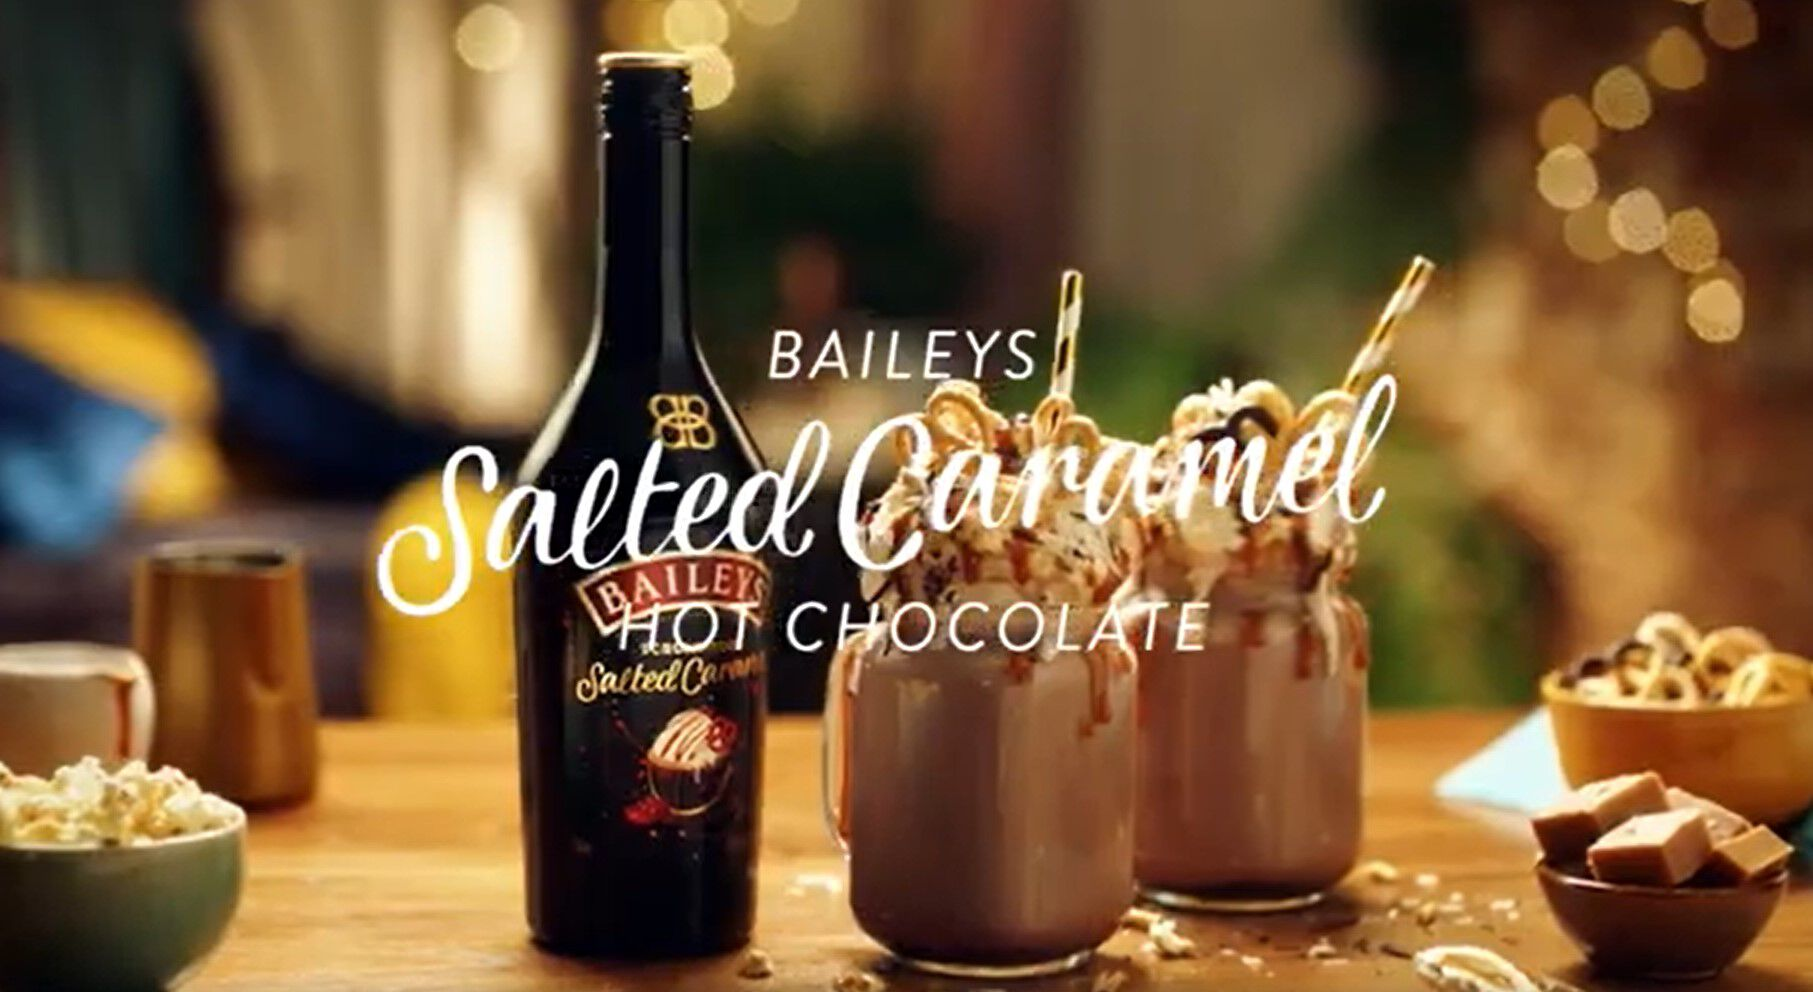 Baileys Salted Caramel Chocolate